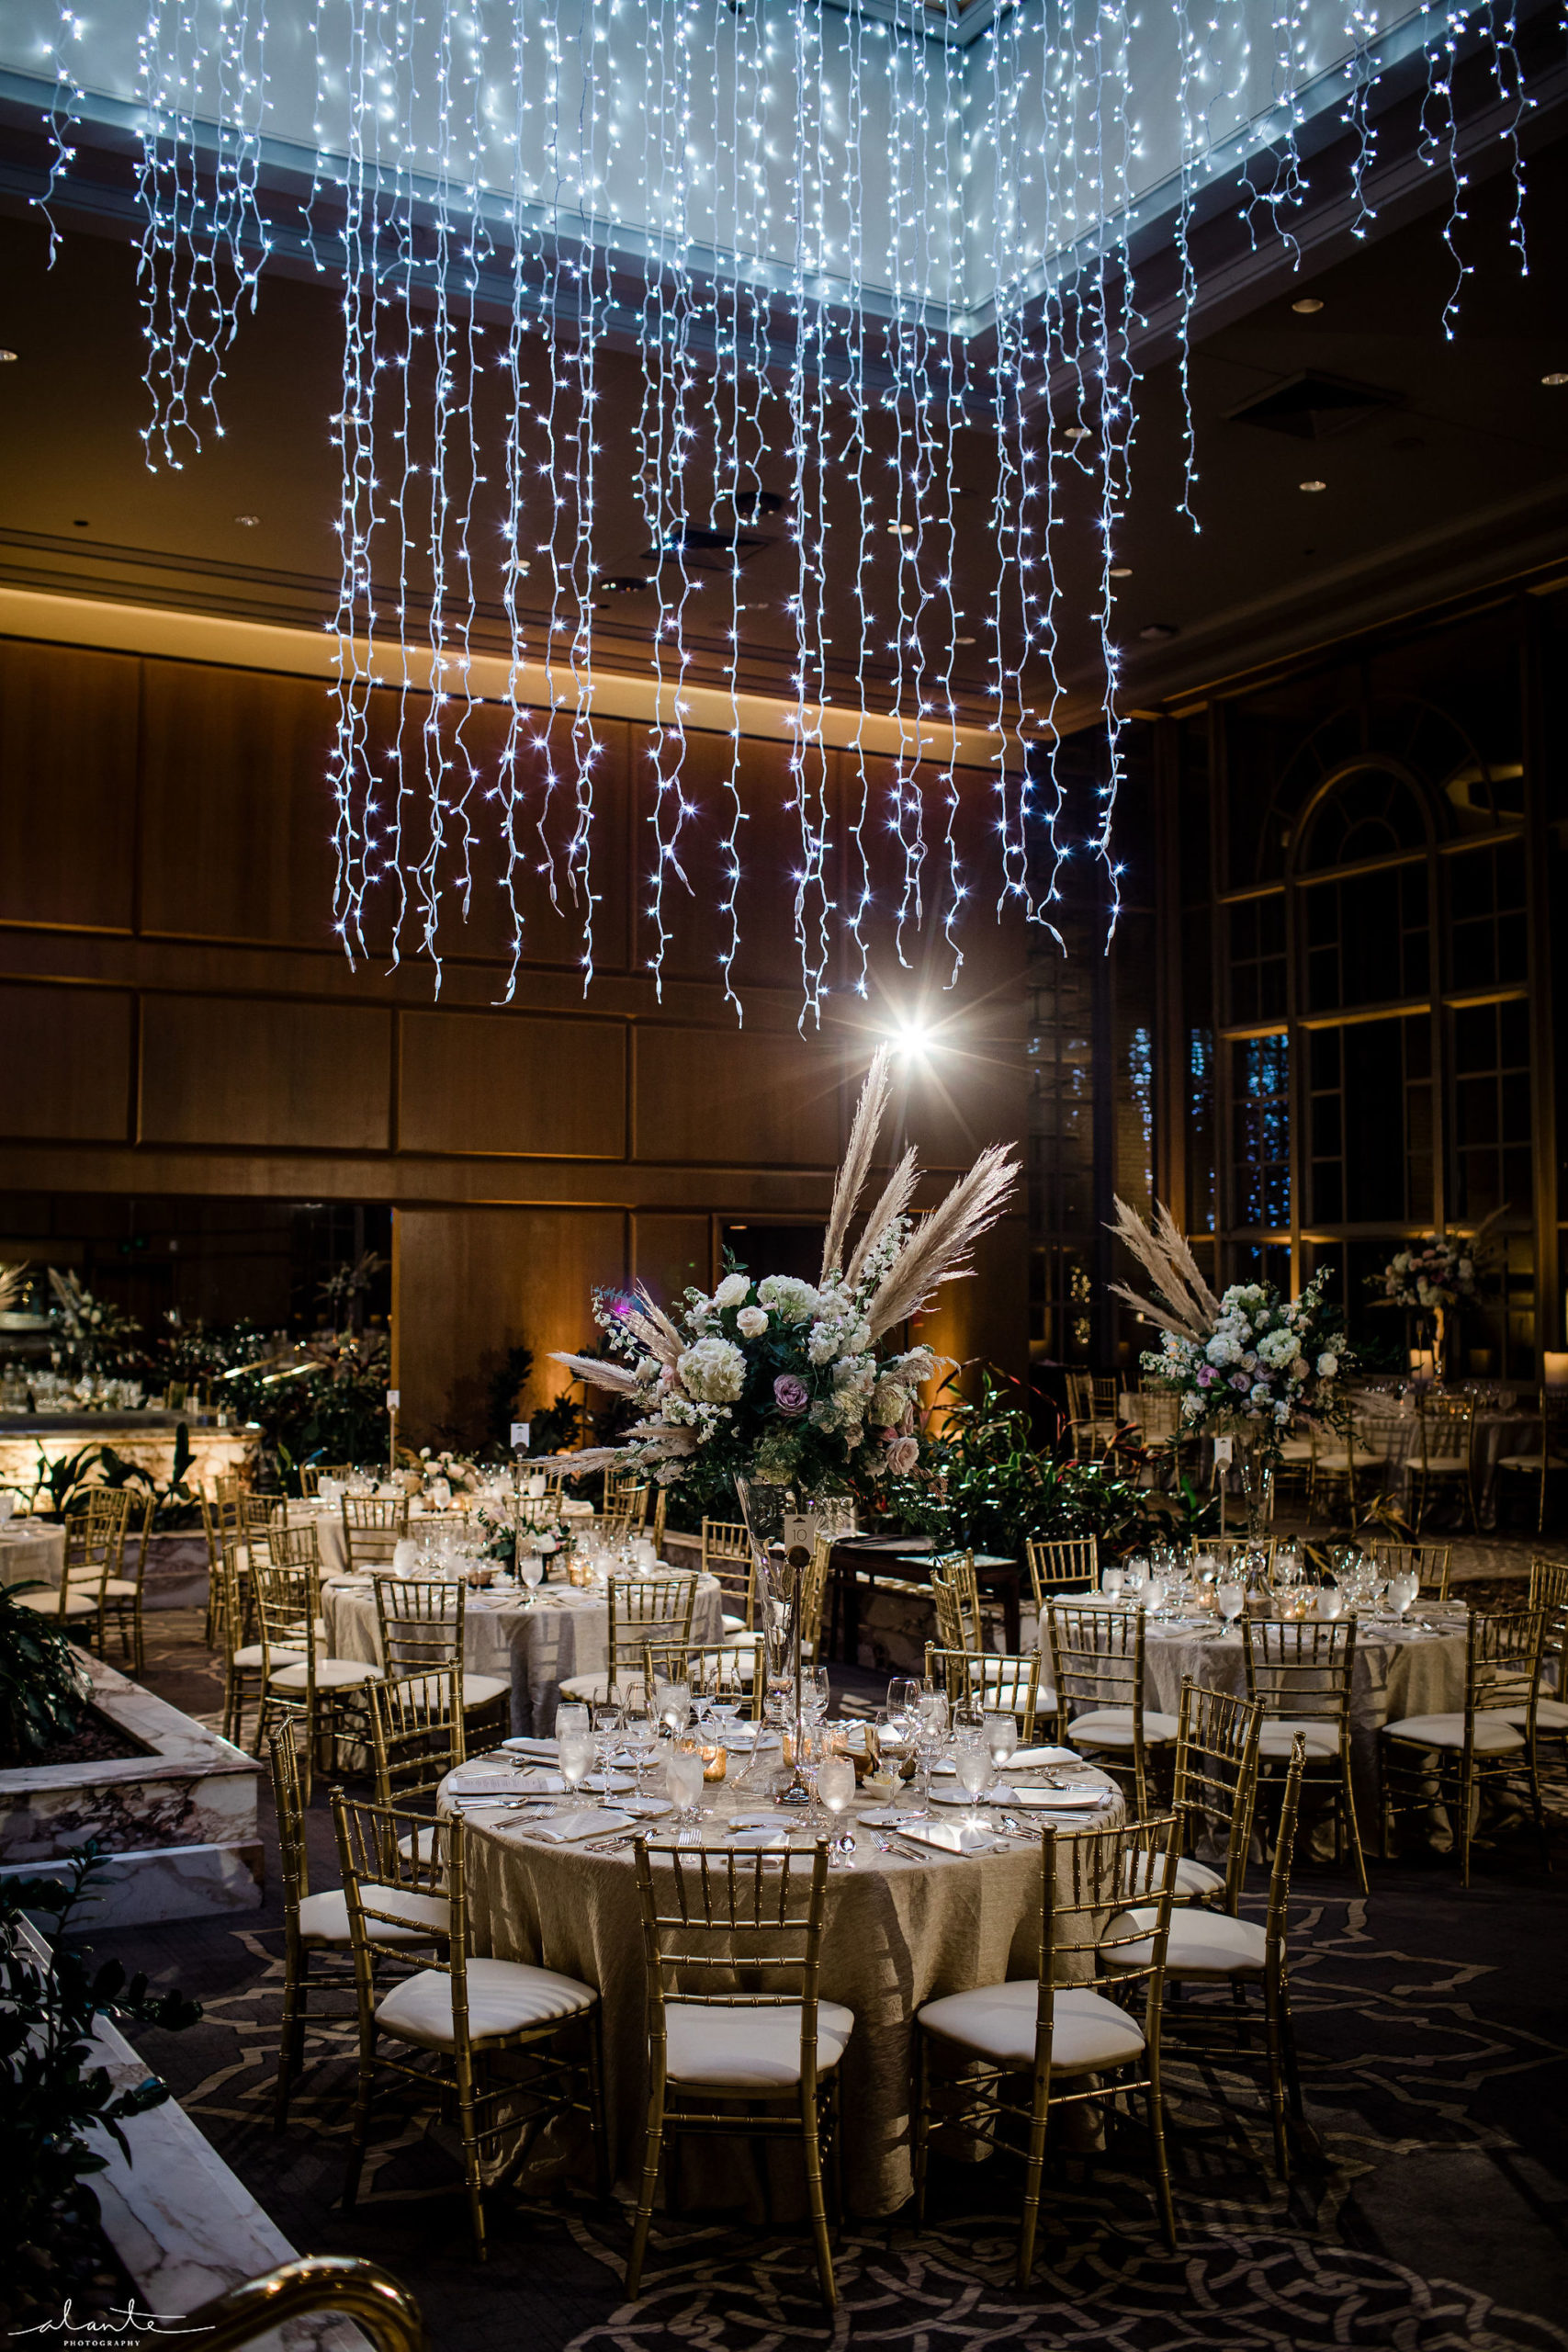 New Years Eve wedding reception with gold tables and chairs and tall white floral under a hanging Christmas light chandelier.